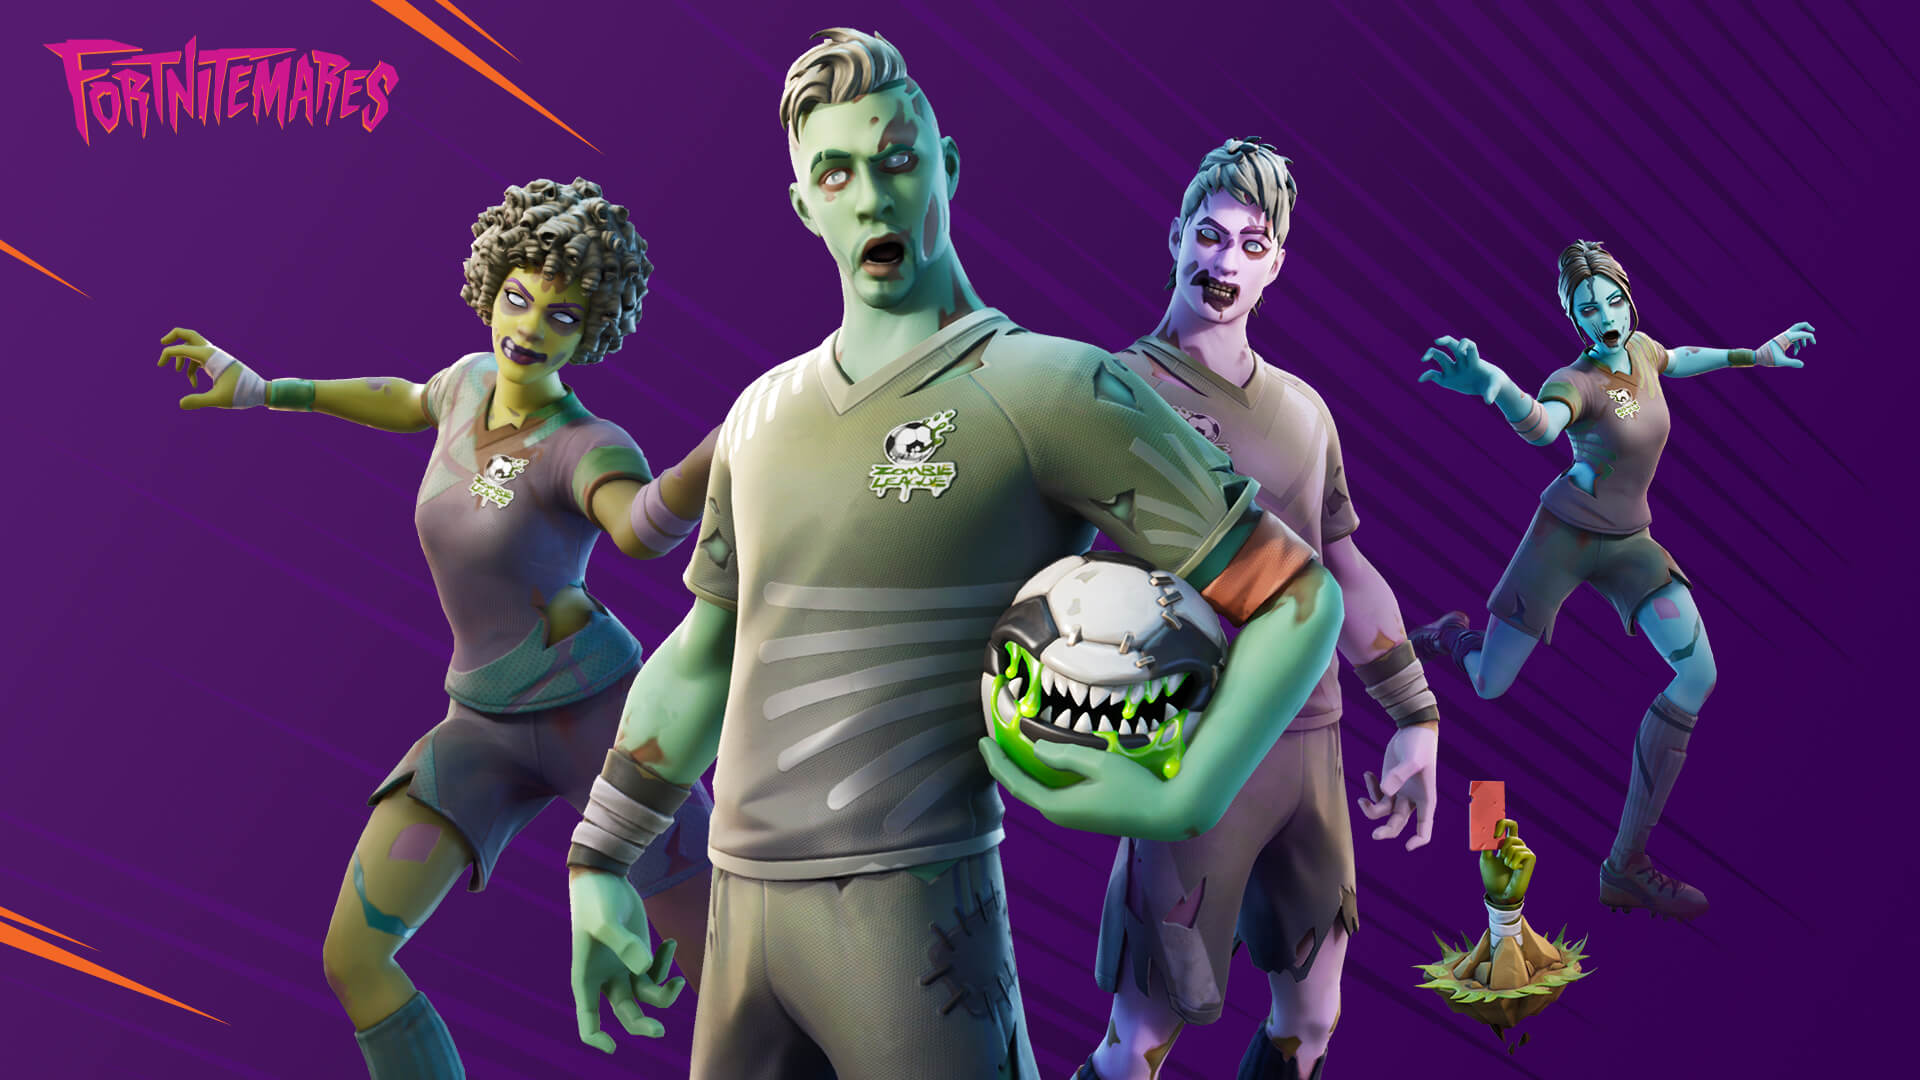 Fortnite Goes All Out For Halloween With New Fortnitemares